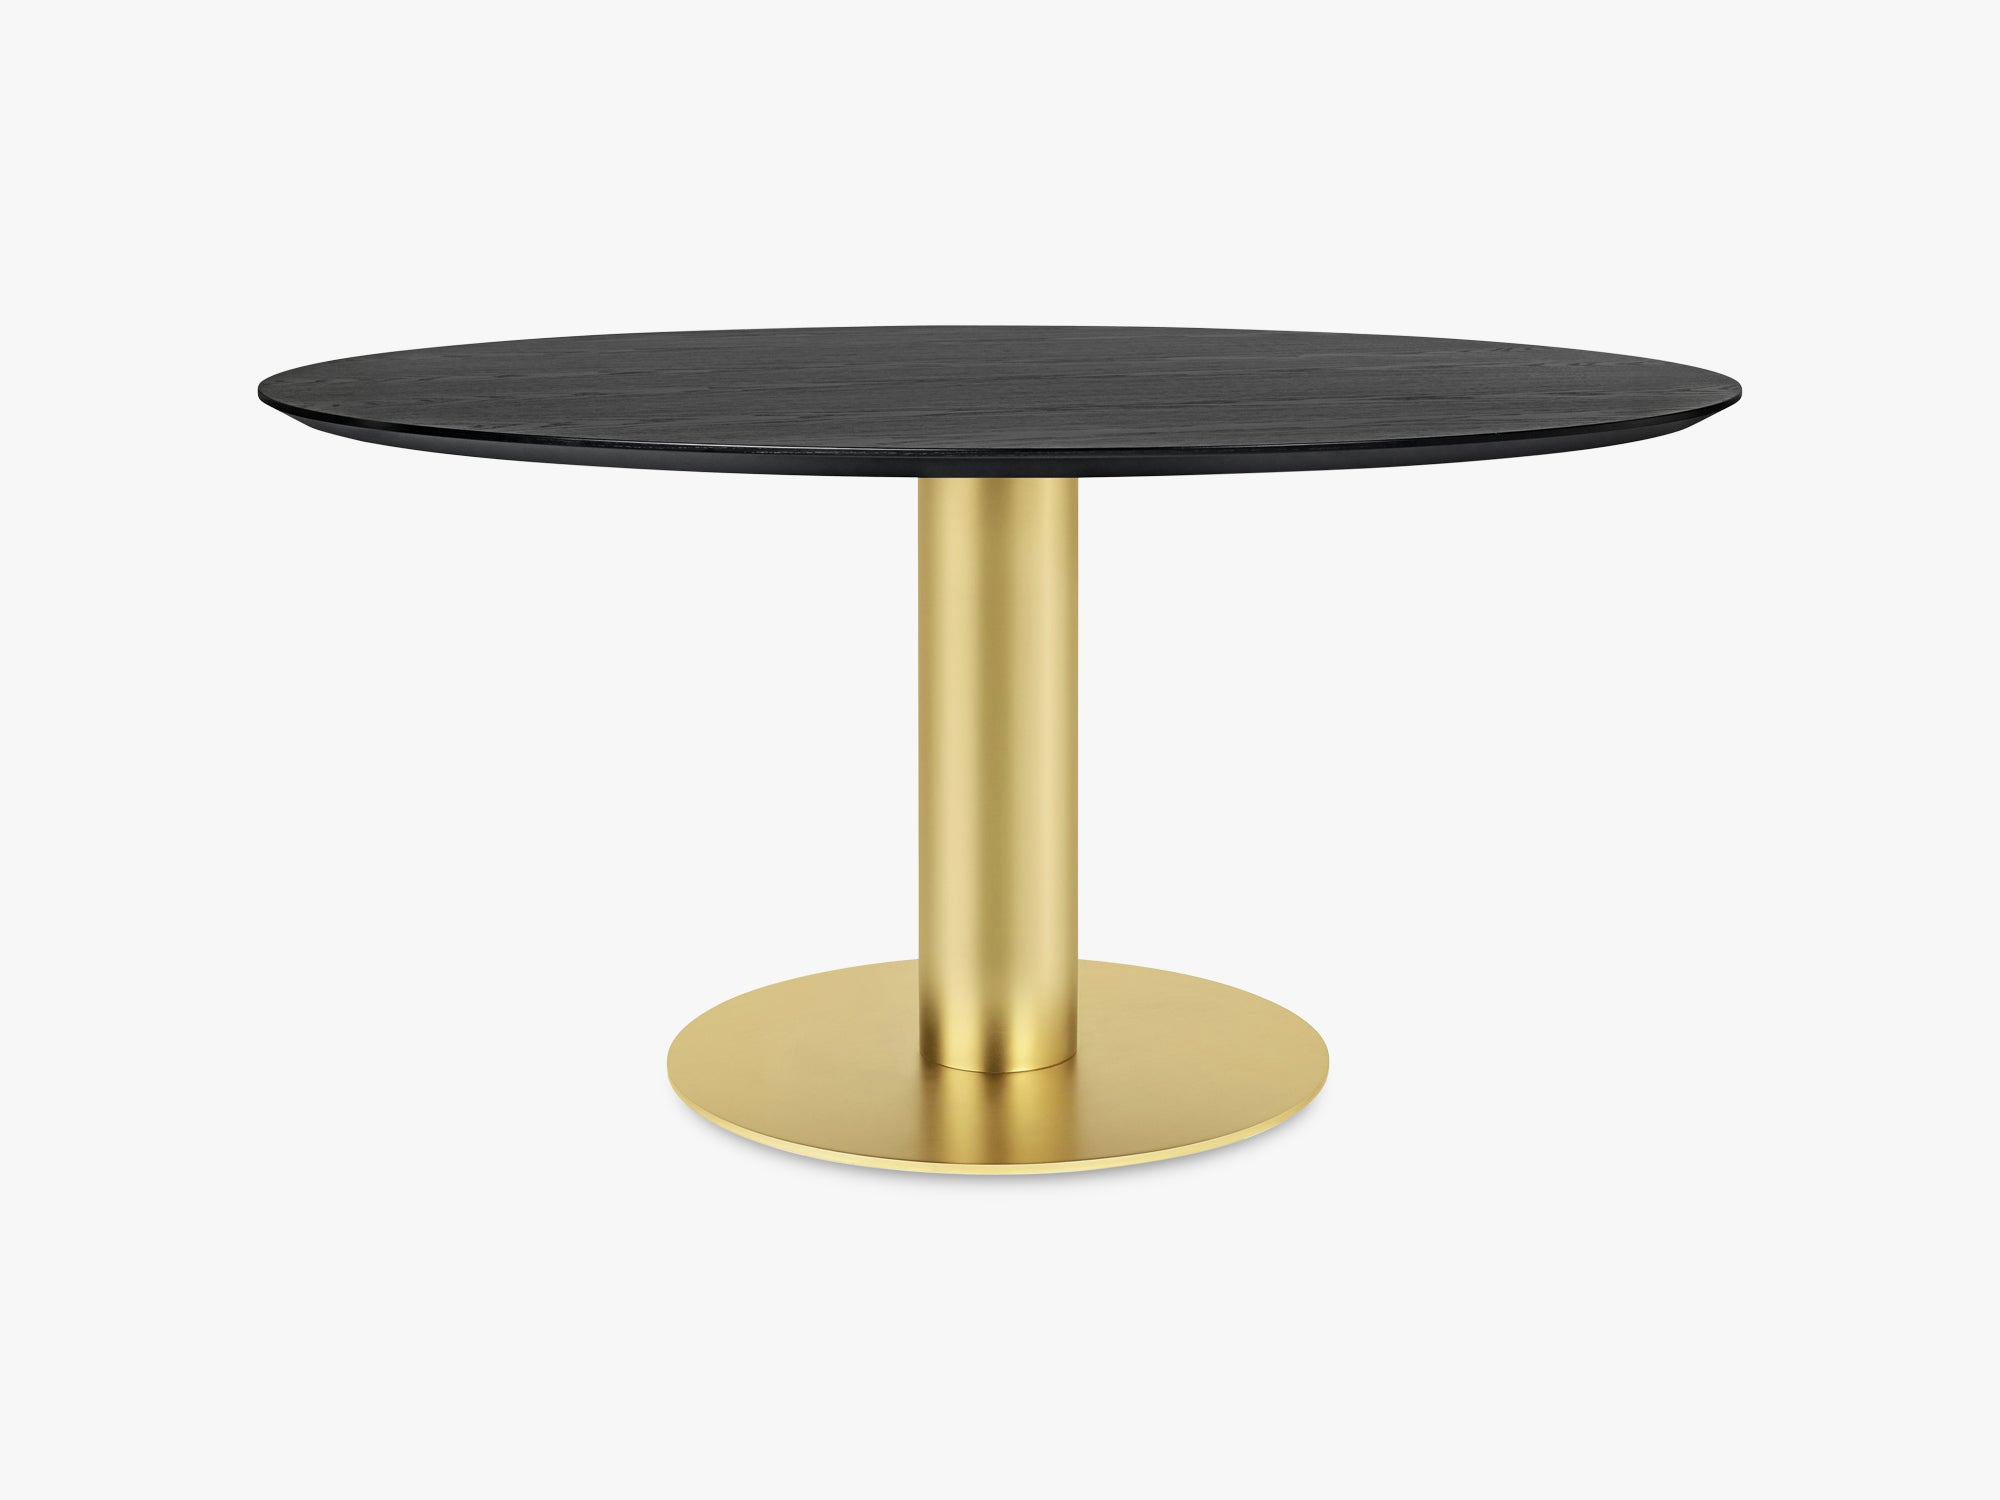 GUBI 2.0 Dining Table - Round - Ø150 - Brass base, Black Stained Ash top fra GUBI